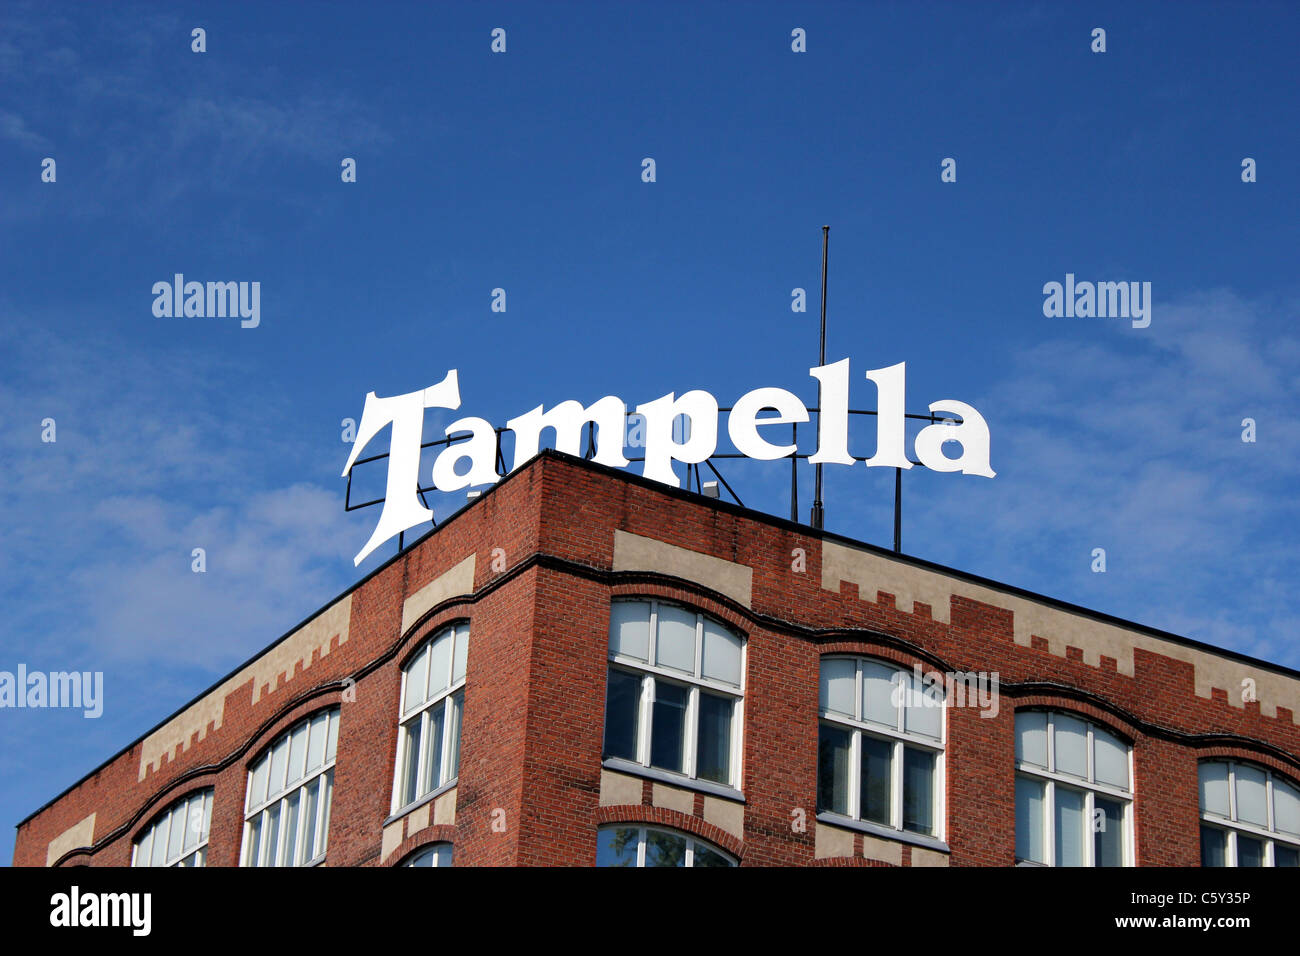 Tampella sign on the roof of their old factory building - Stock Image